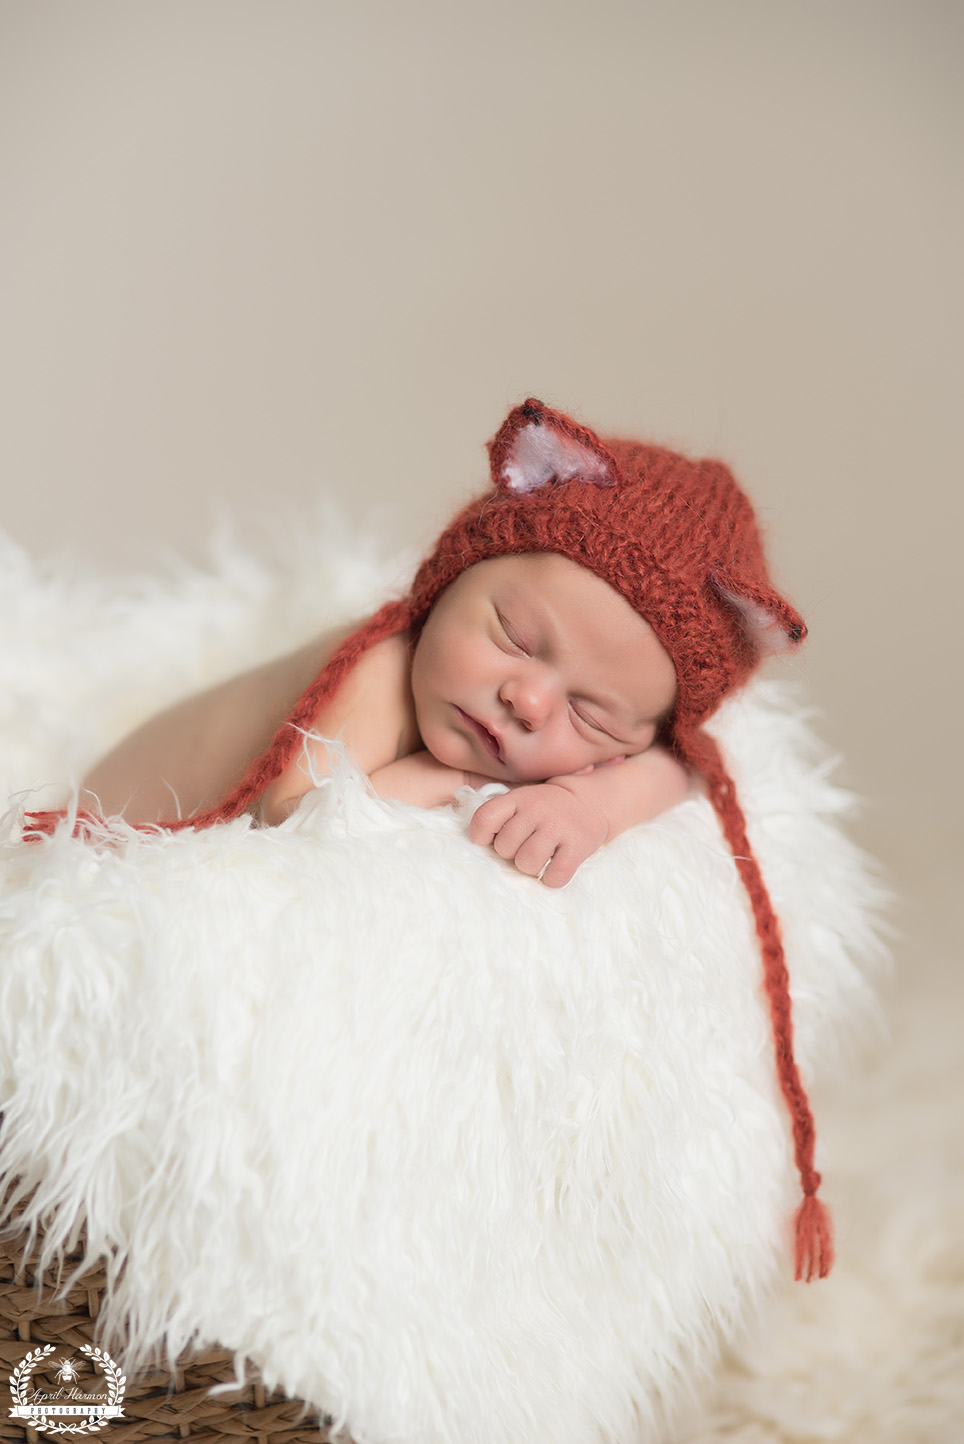 newborn-photography-gardencity-ks-16.jpg